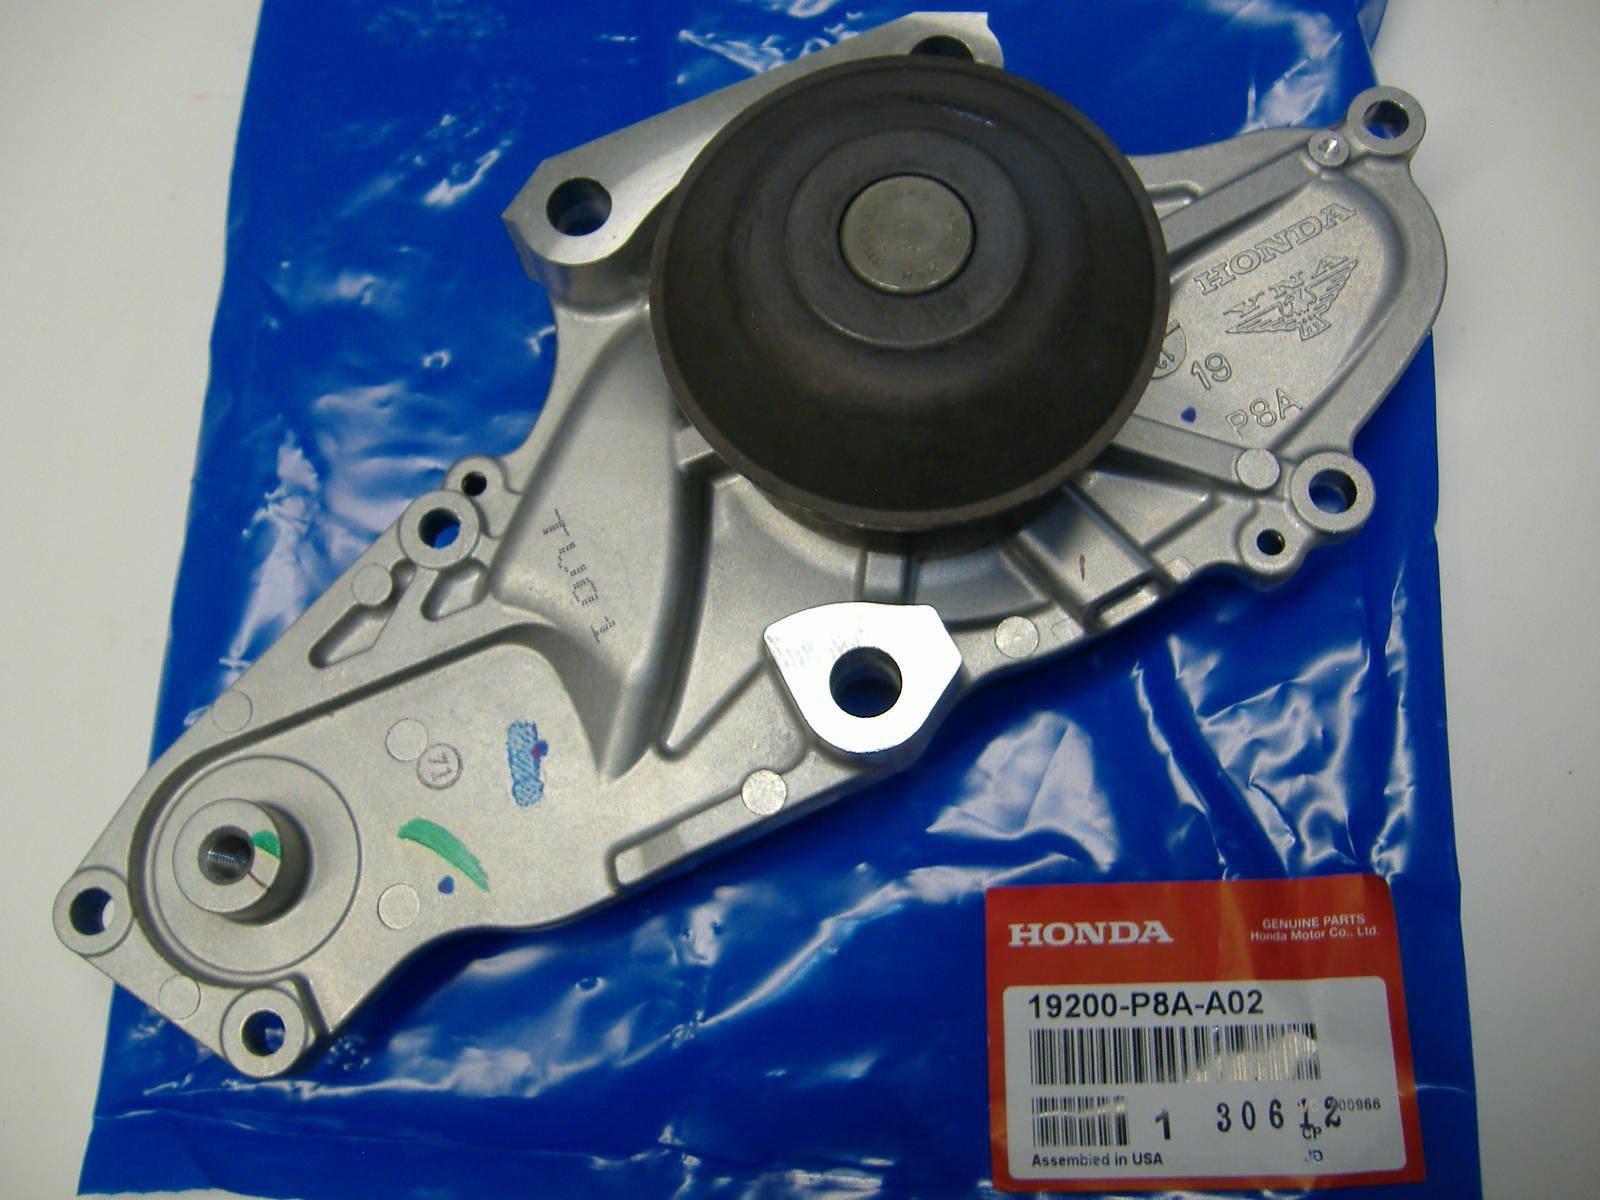 Genuine Honda (19200-P8A-A02) Water Pump